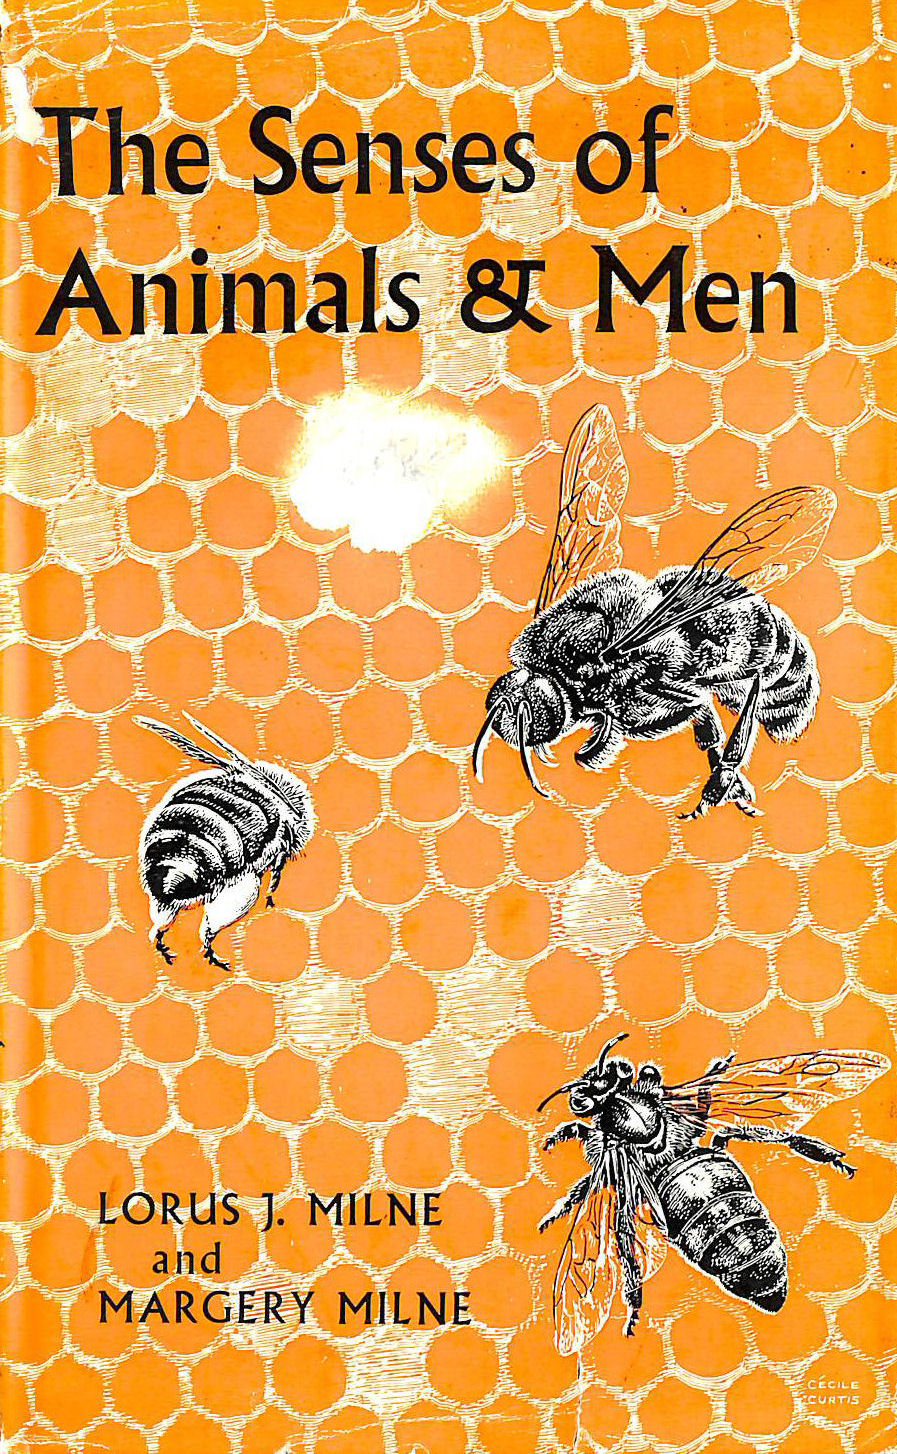 Image for THE SENSES OF ANIMALS AND MEN.